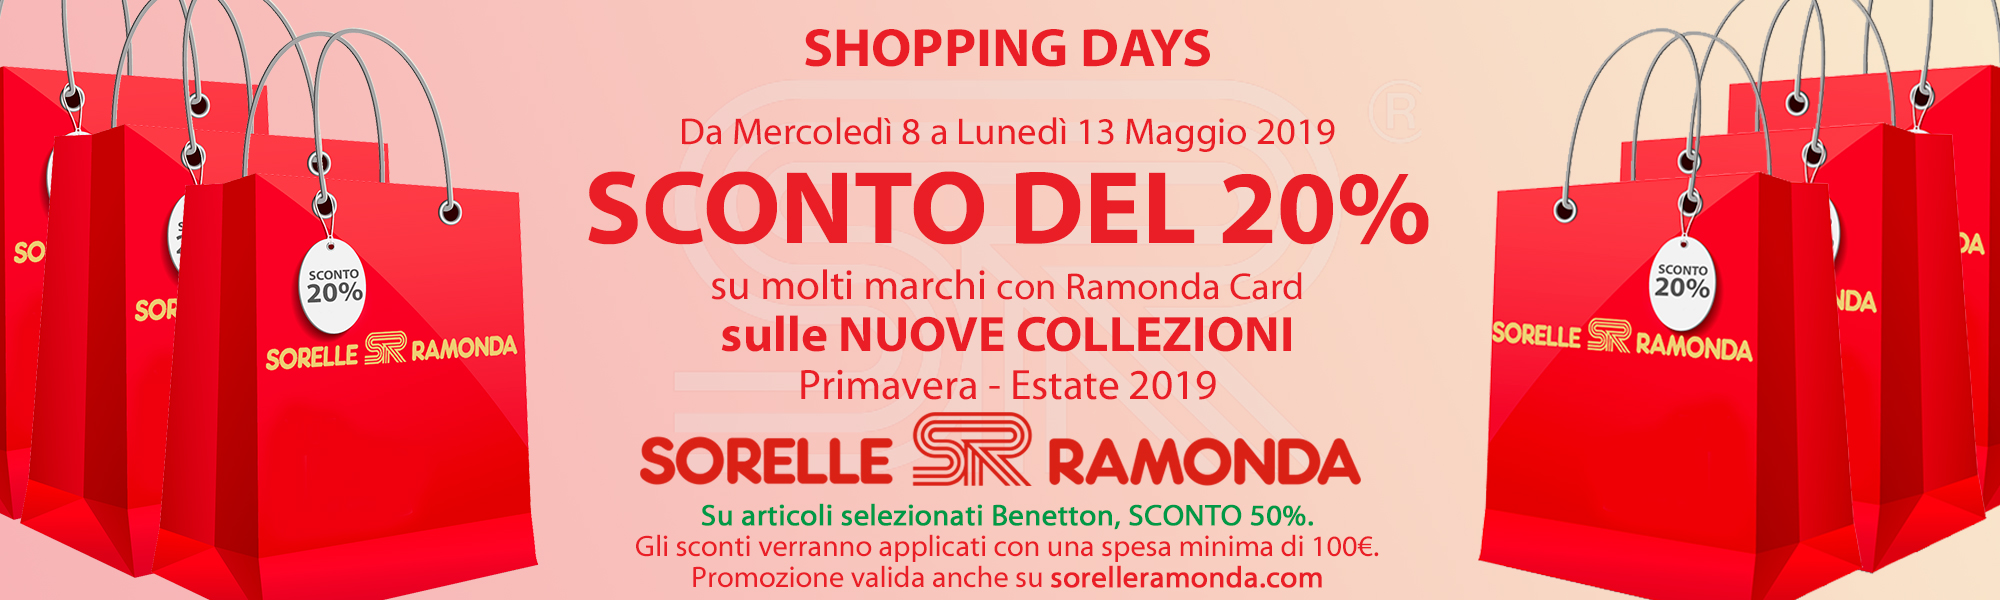 shopping-days-maggio-2019-sorelle-ramonda